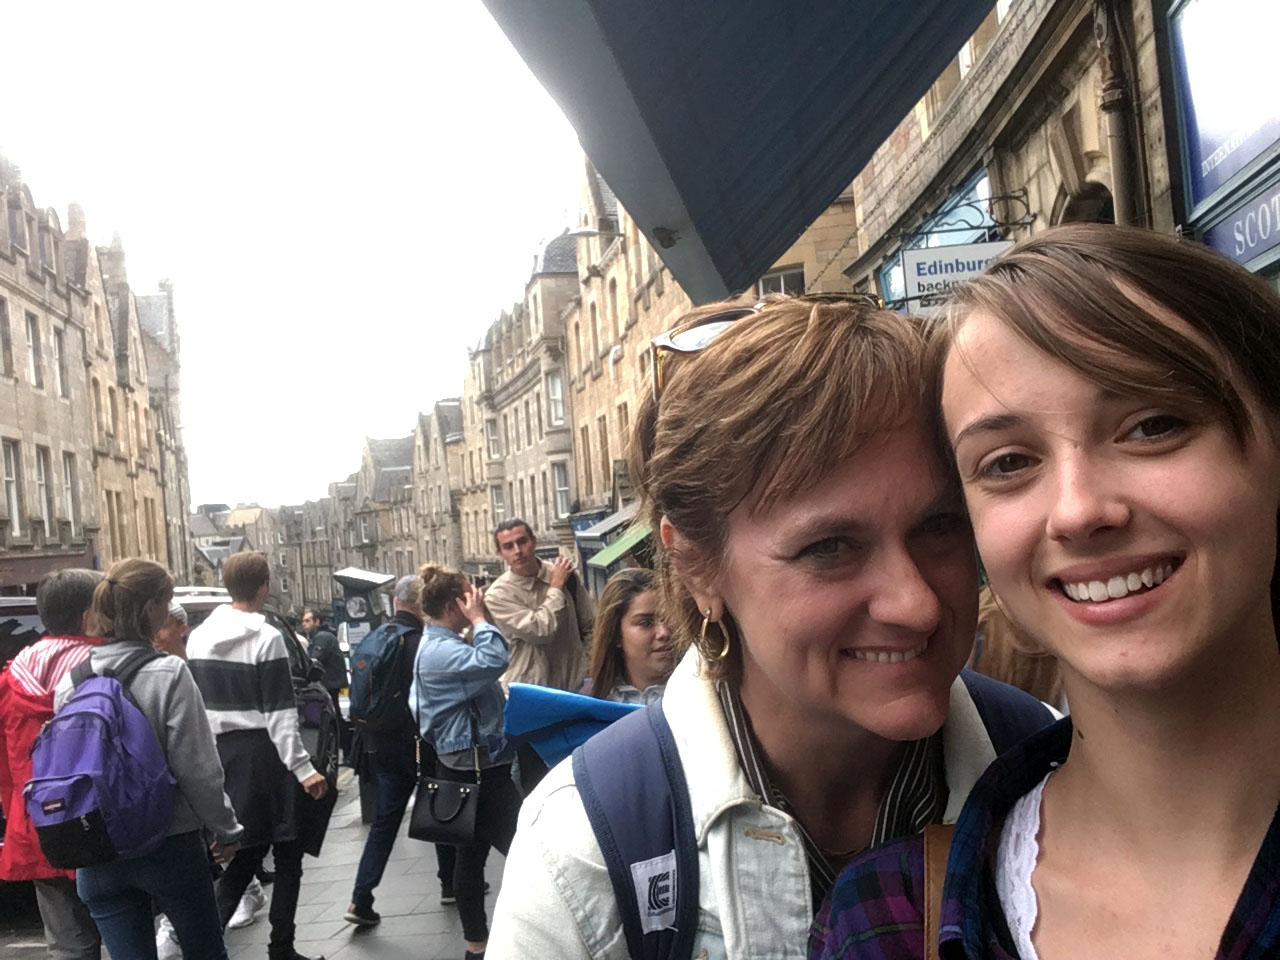 Junior Erin Riley and her mom stop to take a picture in Edinburgh, Scotland.